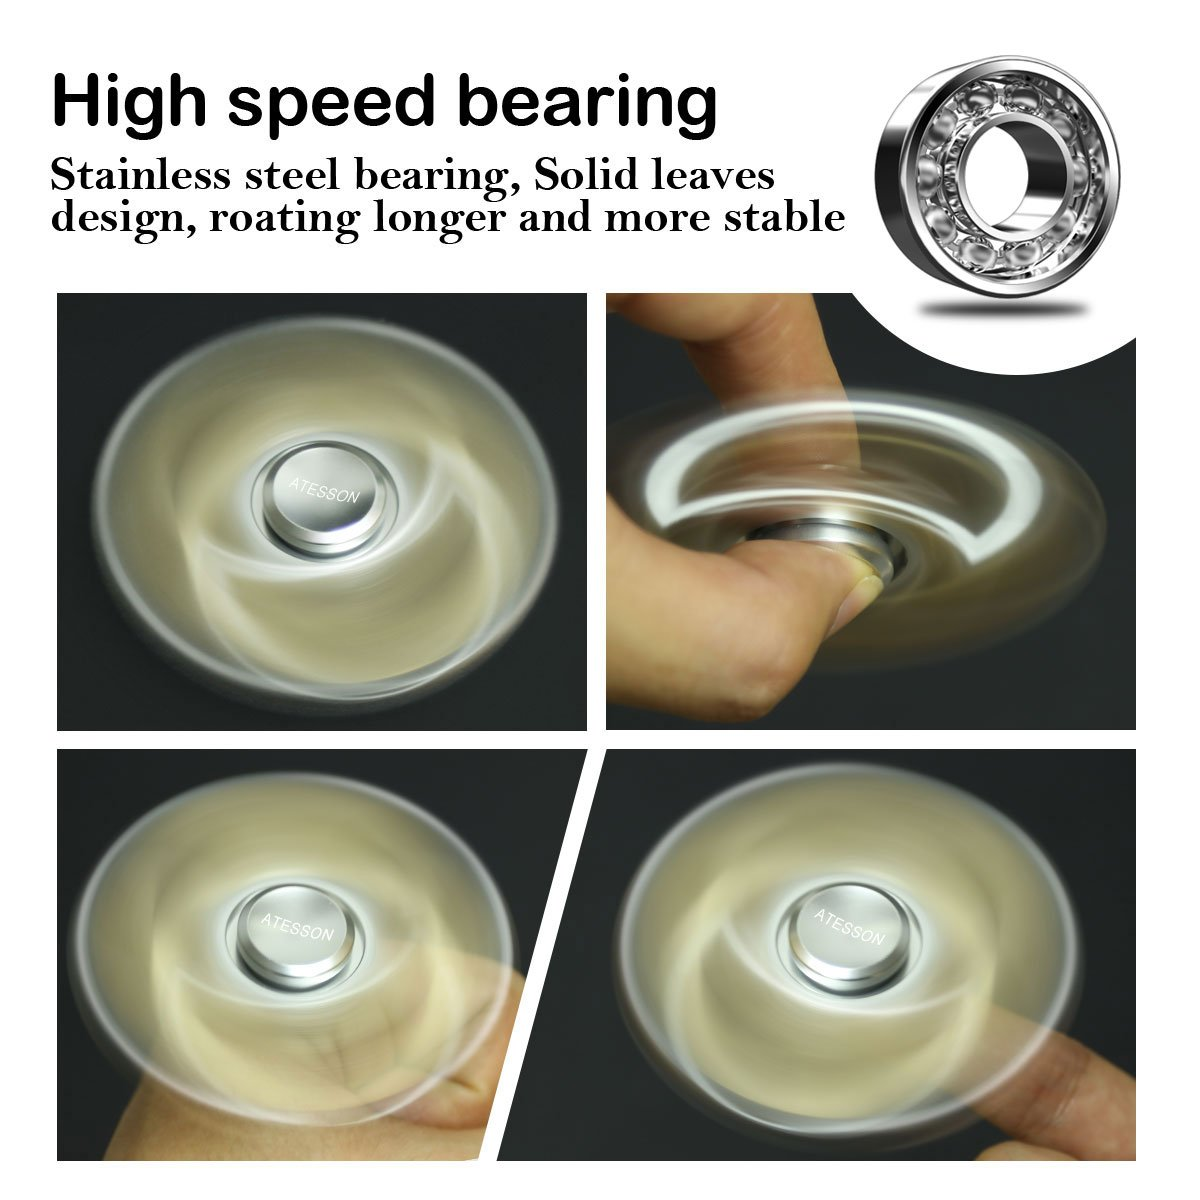 ATESSON Fidget Spinner Toy 4-10 Min Spins Ultra Durable Stainless Steel Bearing High Speed Precision Metal Material Hand Spinner Focus Anxiety Stress Relief Boredom Killing Time Toys - Silver by ATESSON (Image #3)